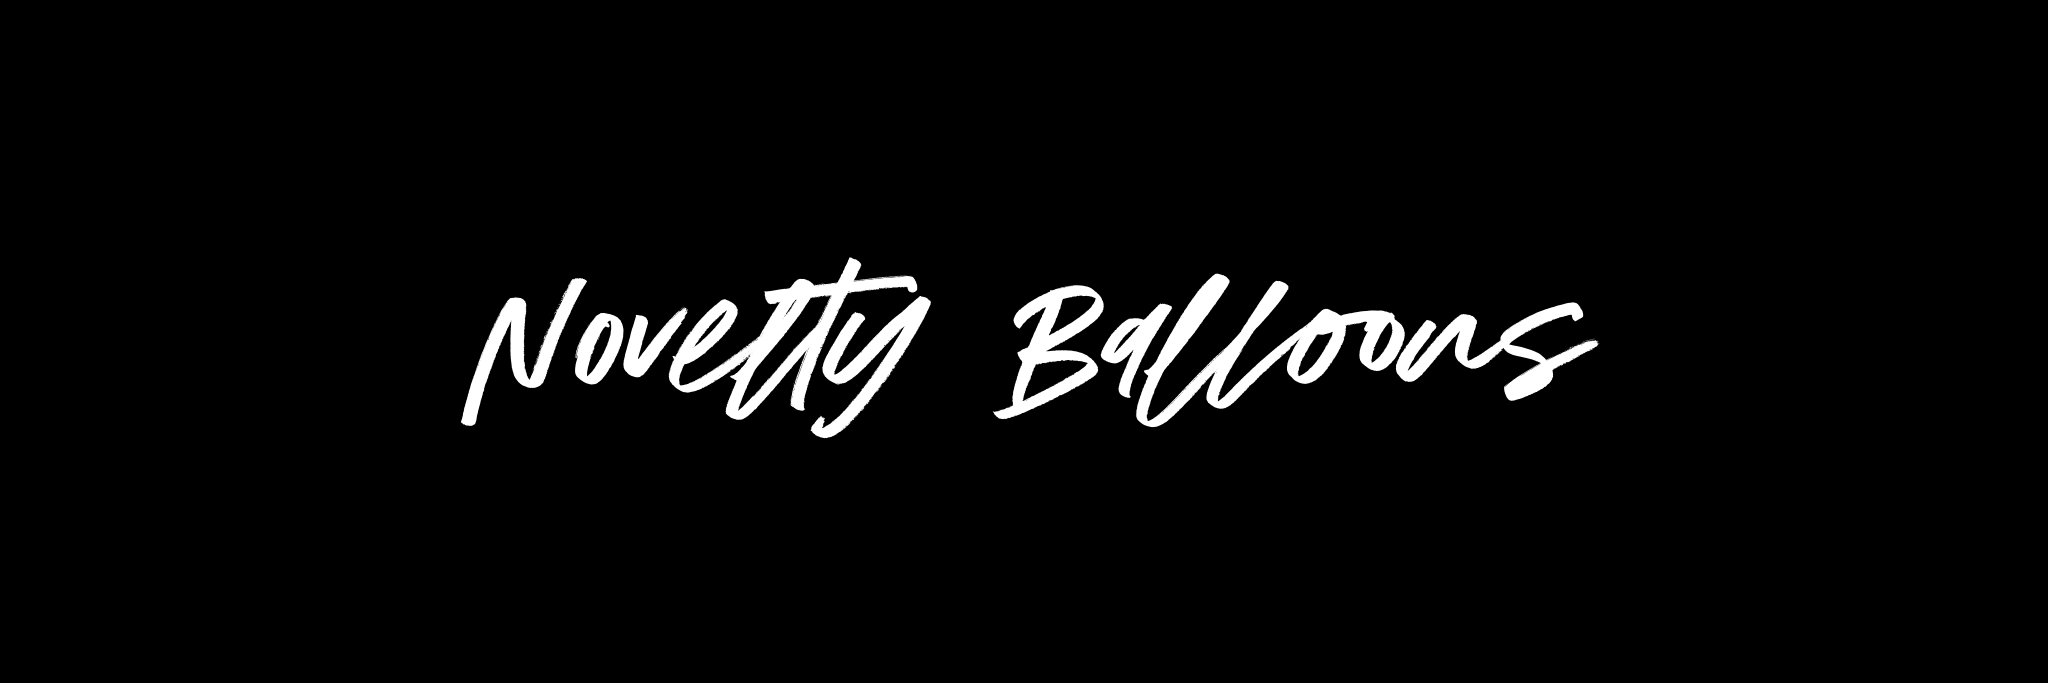 noveltyballoons.png